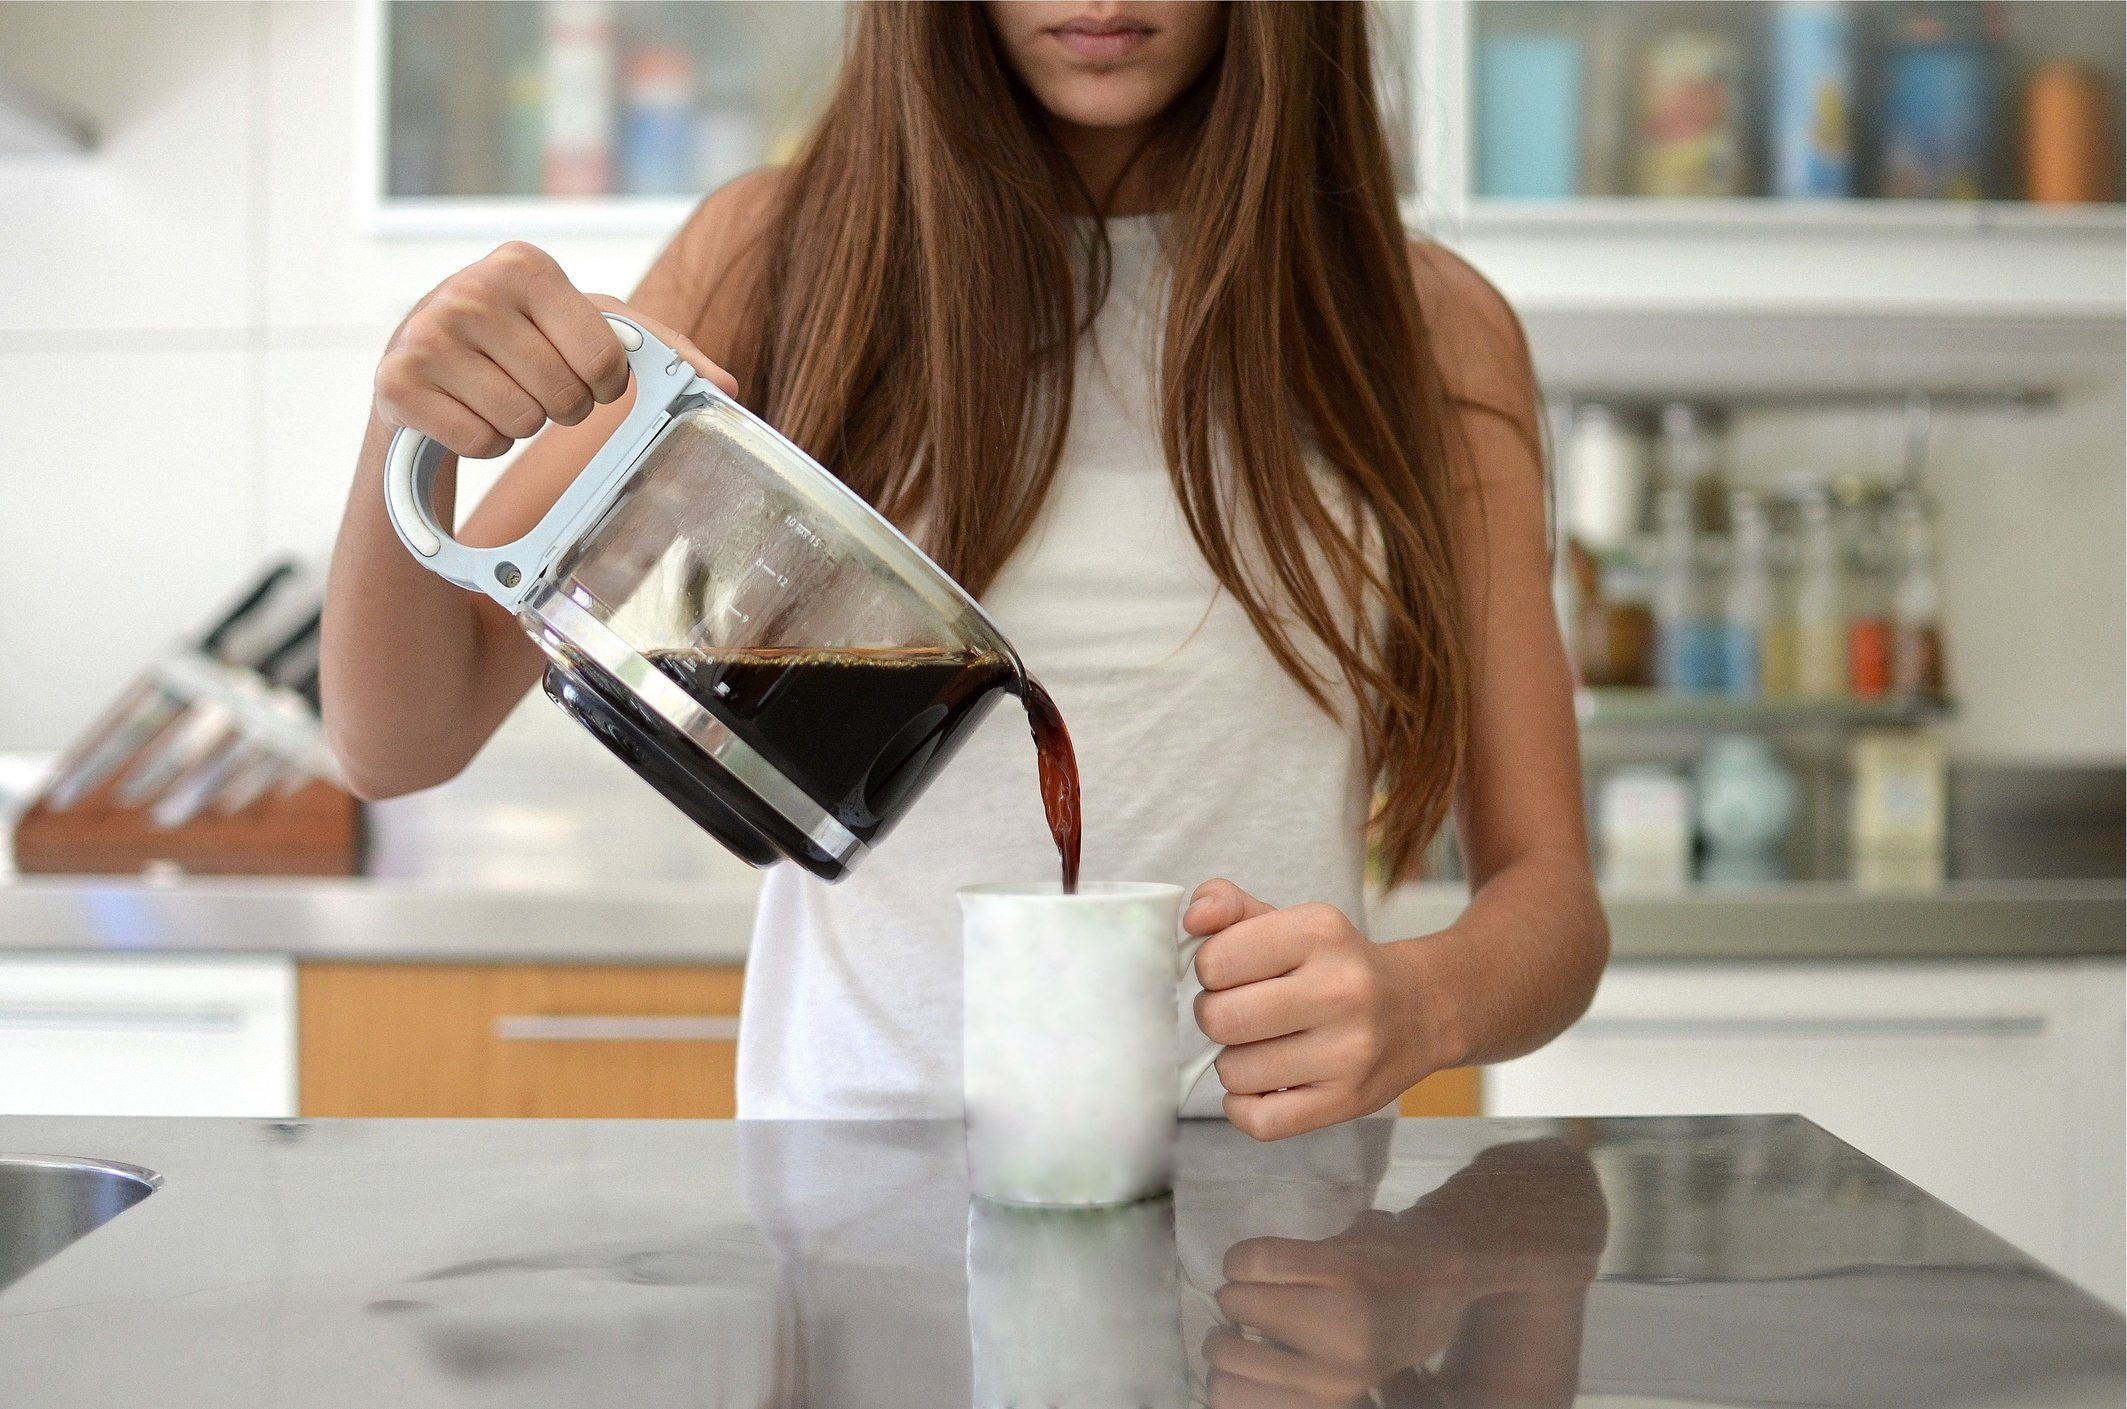 cause dehydration | woman pouring coffee into mug